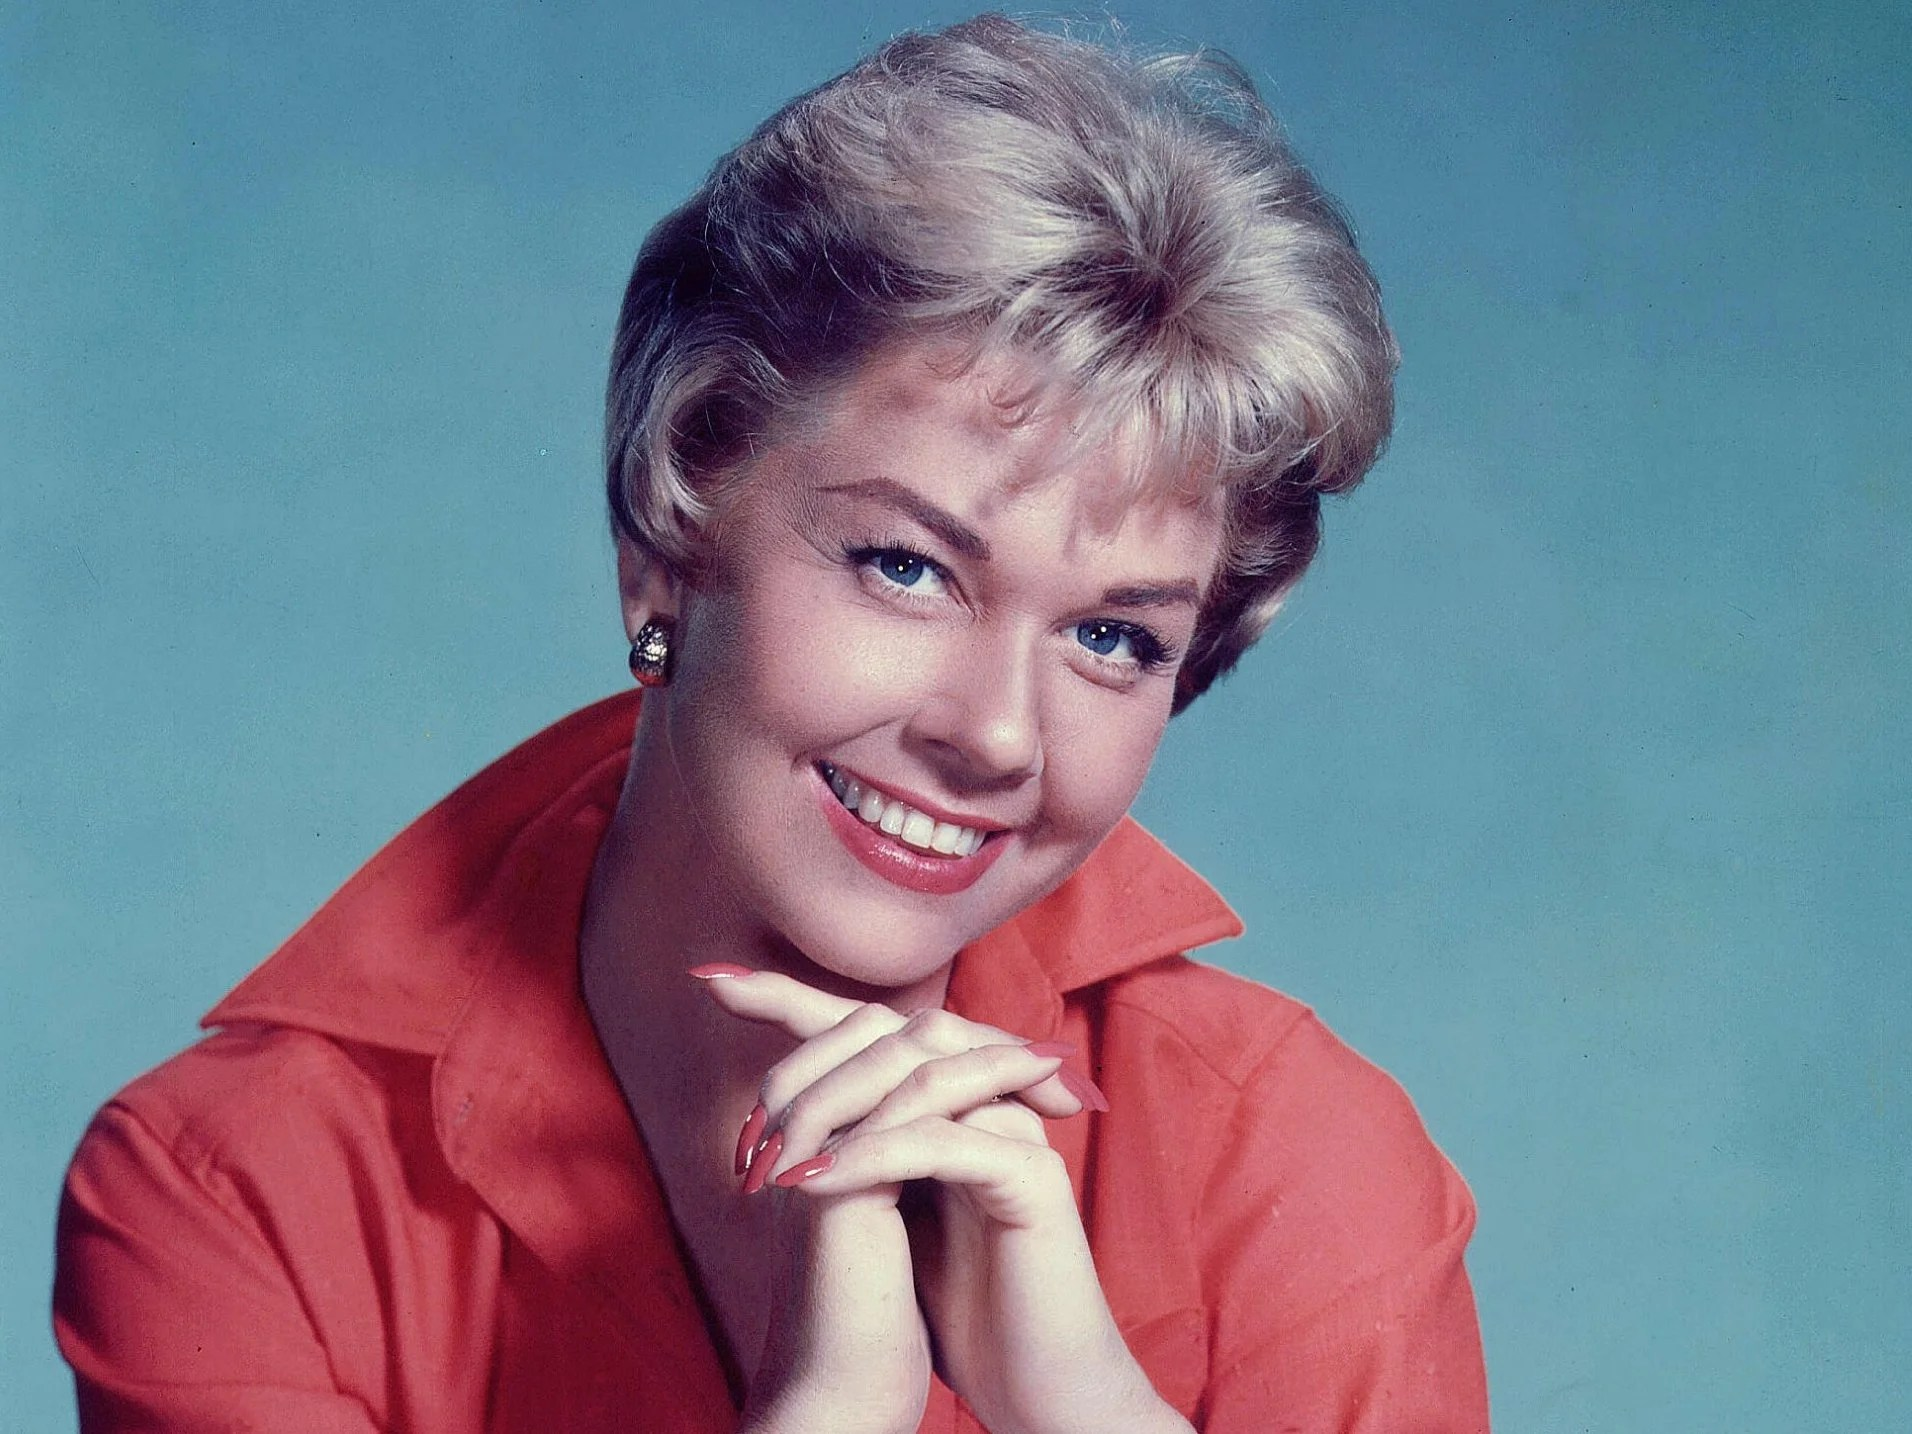 Doris Day Tribute American Icon Was Much More Than Her